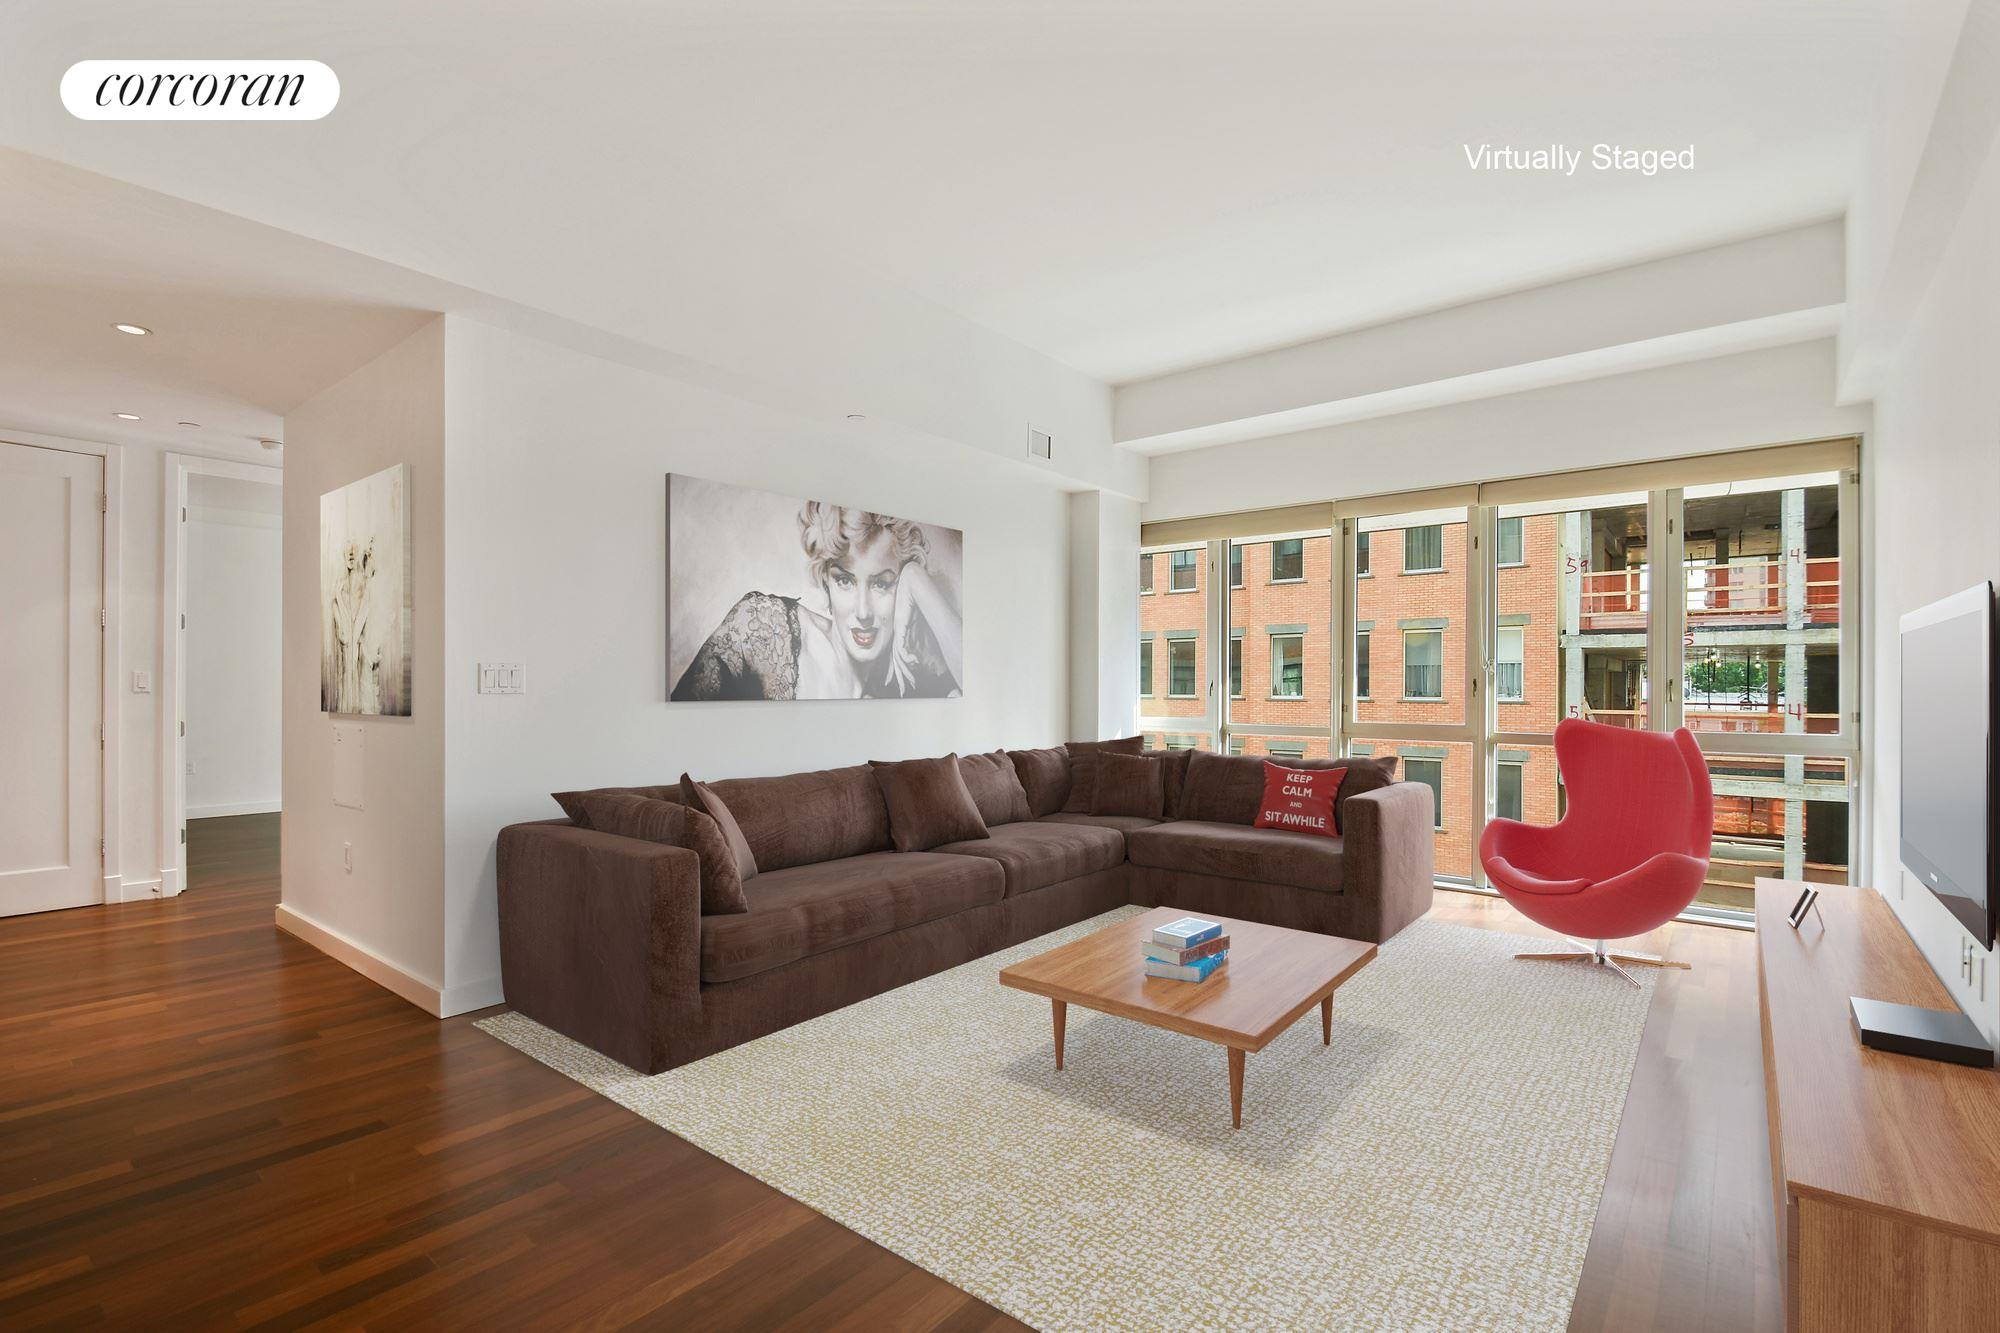 125 North 10th Street, SOUTH4D, Open Living Room w/Southern Light and Views